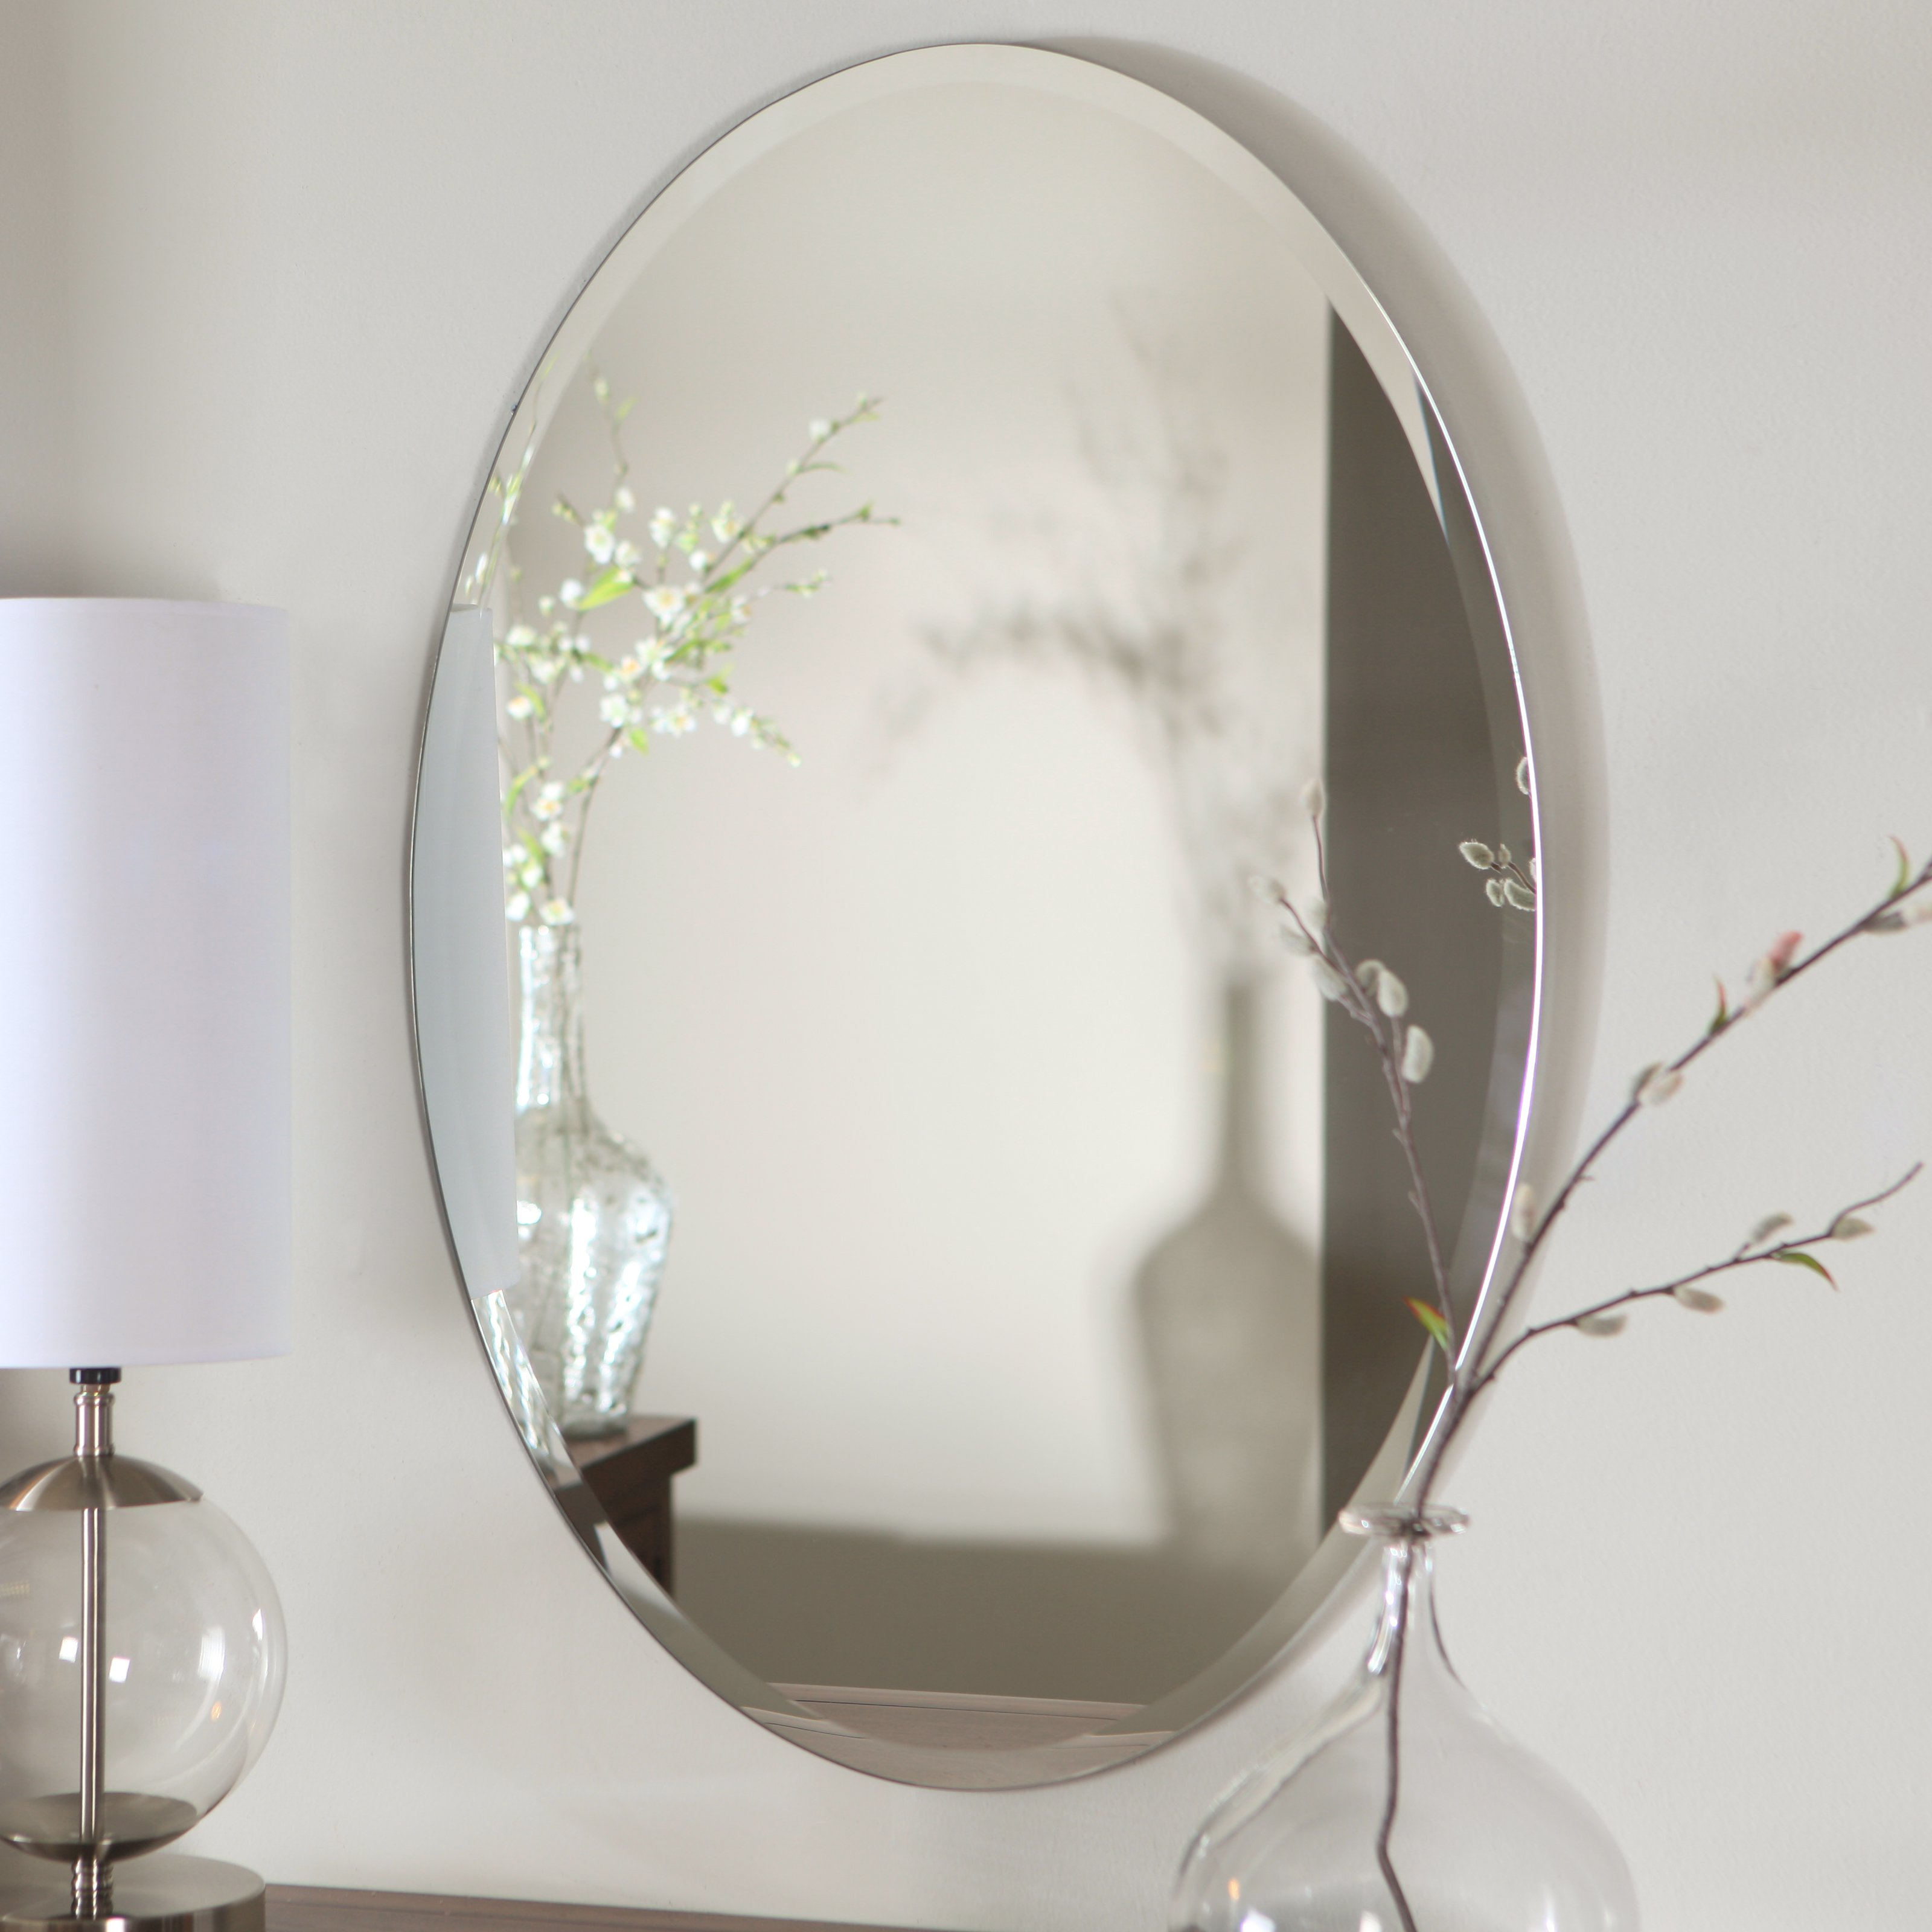 Décor Wonderland Hiltonia Oval Bevel Frameless Wall Mirror - 24W x 36H in.